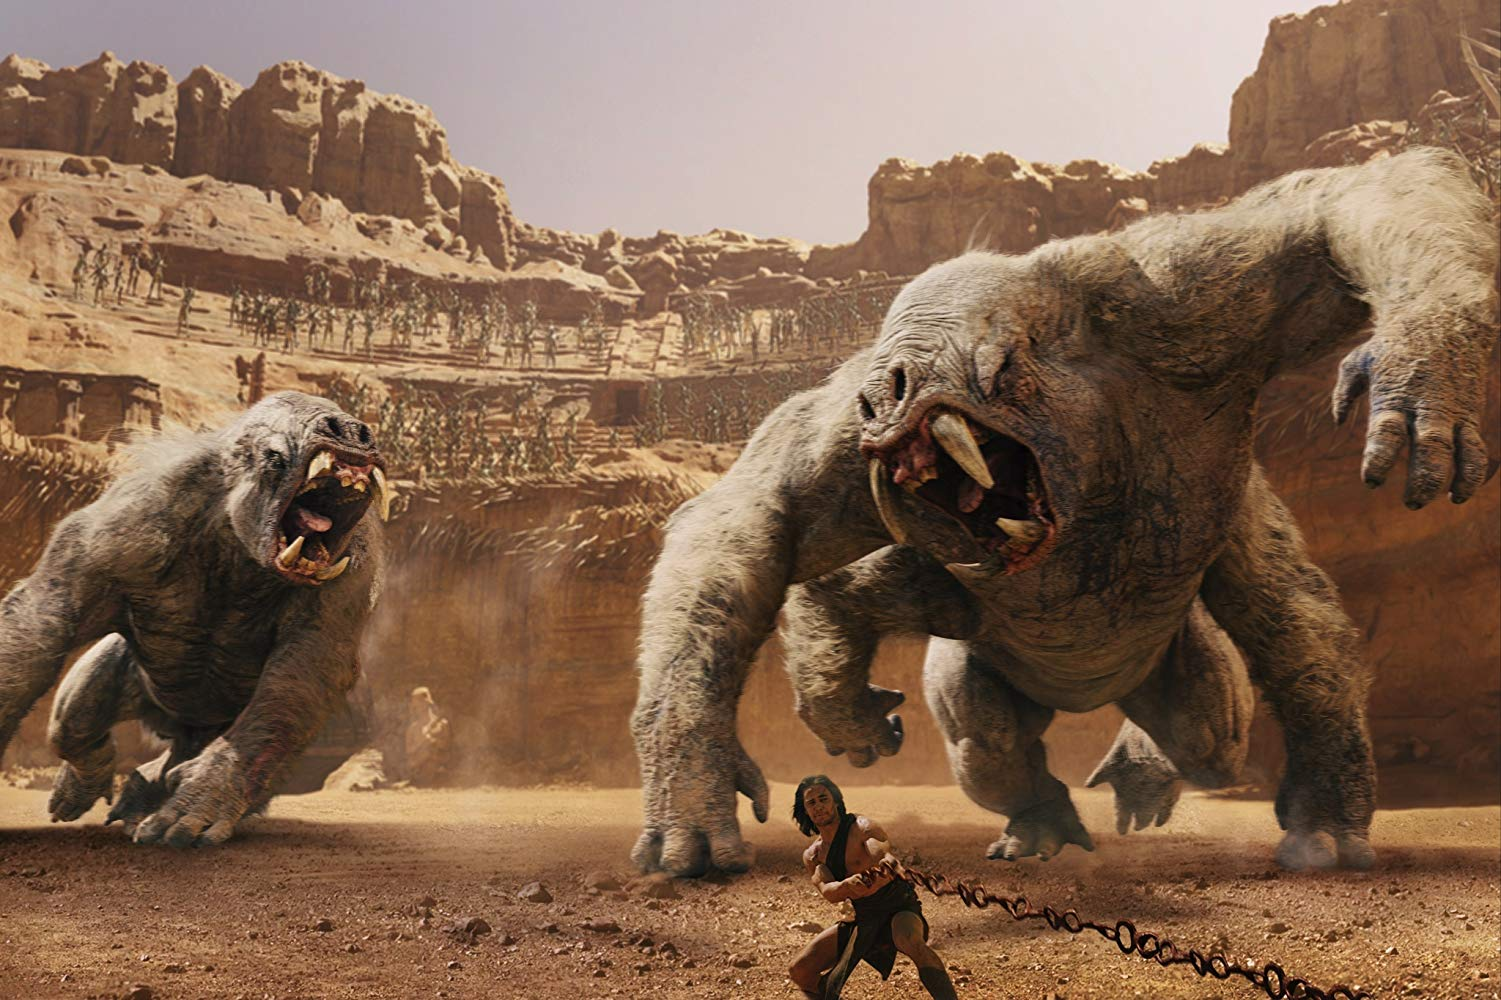 John Carter (Taylor Kitsch) sentenced to battle the white apes in the area in John Carter (2012)